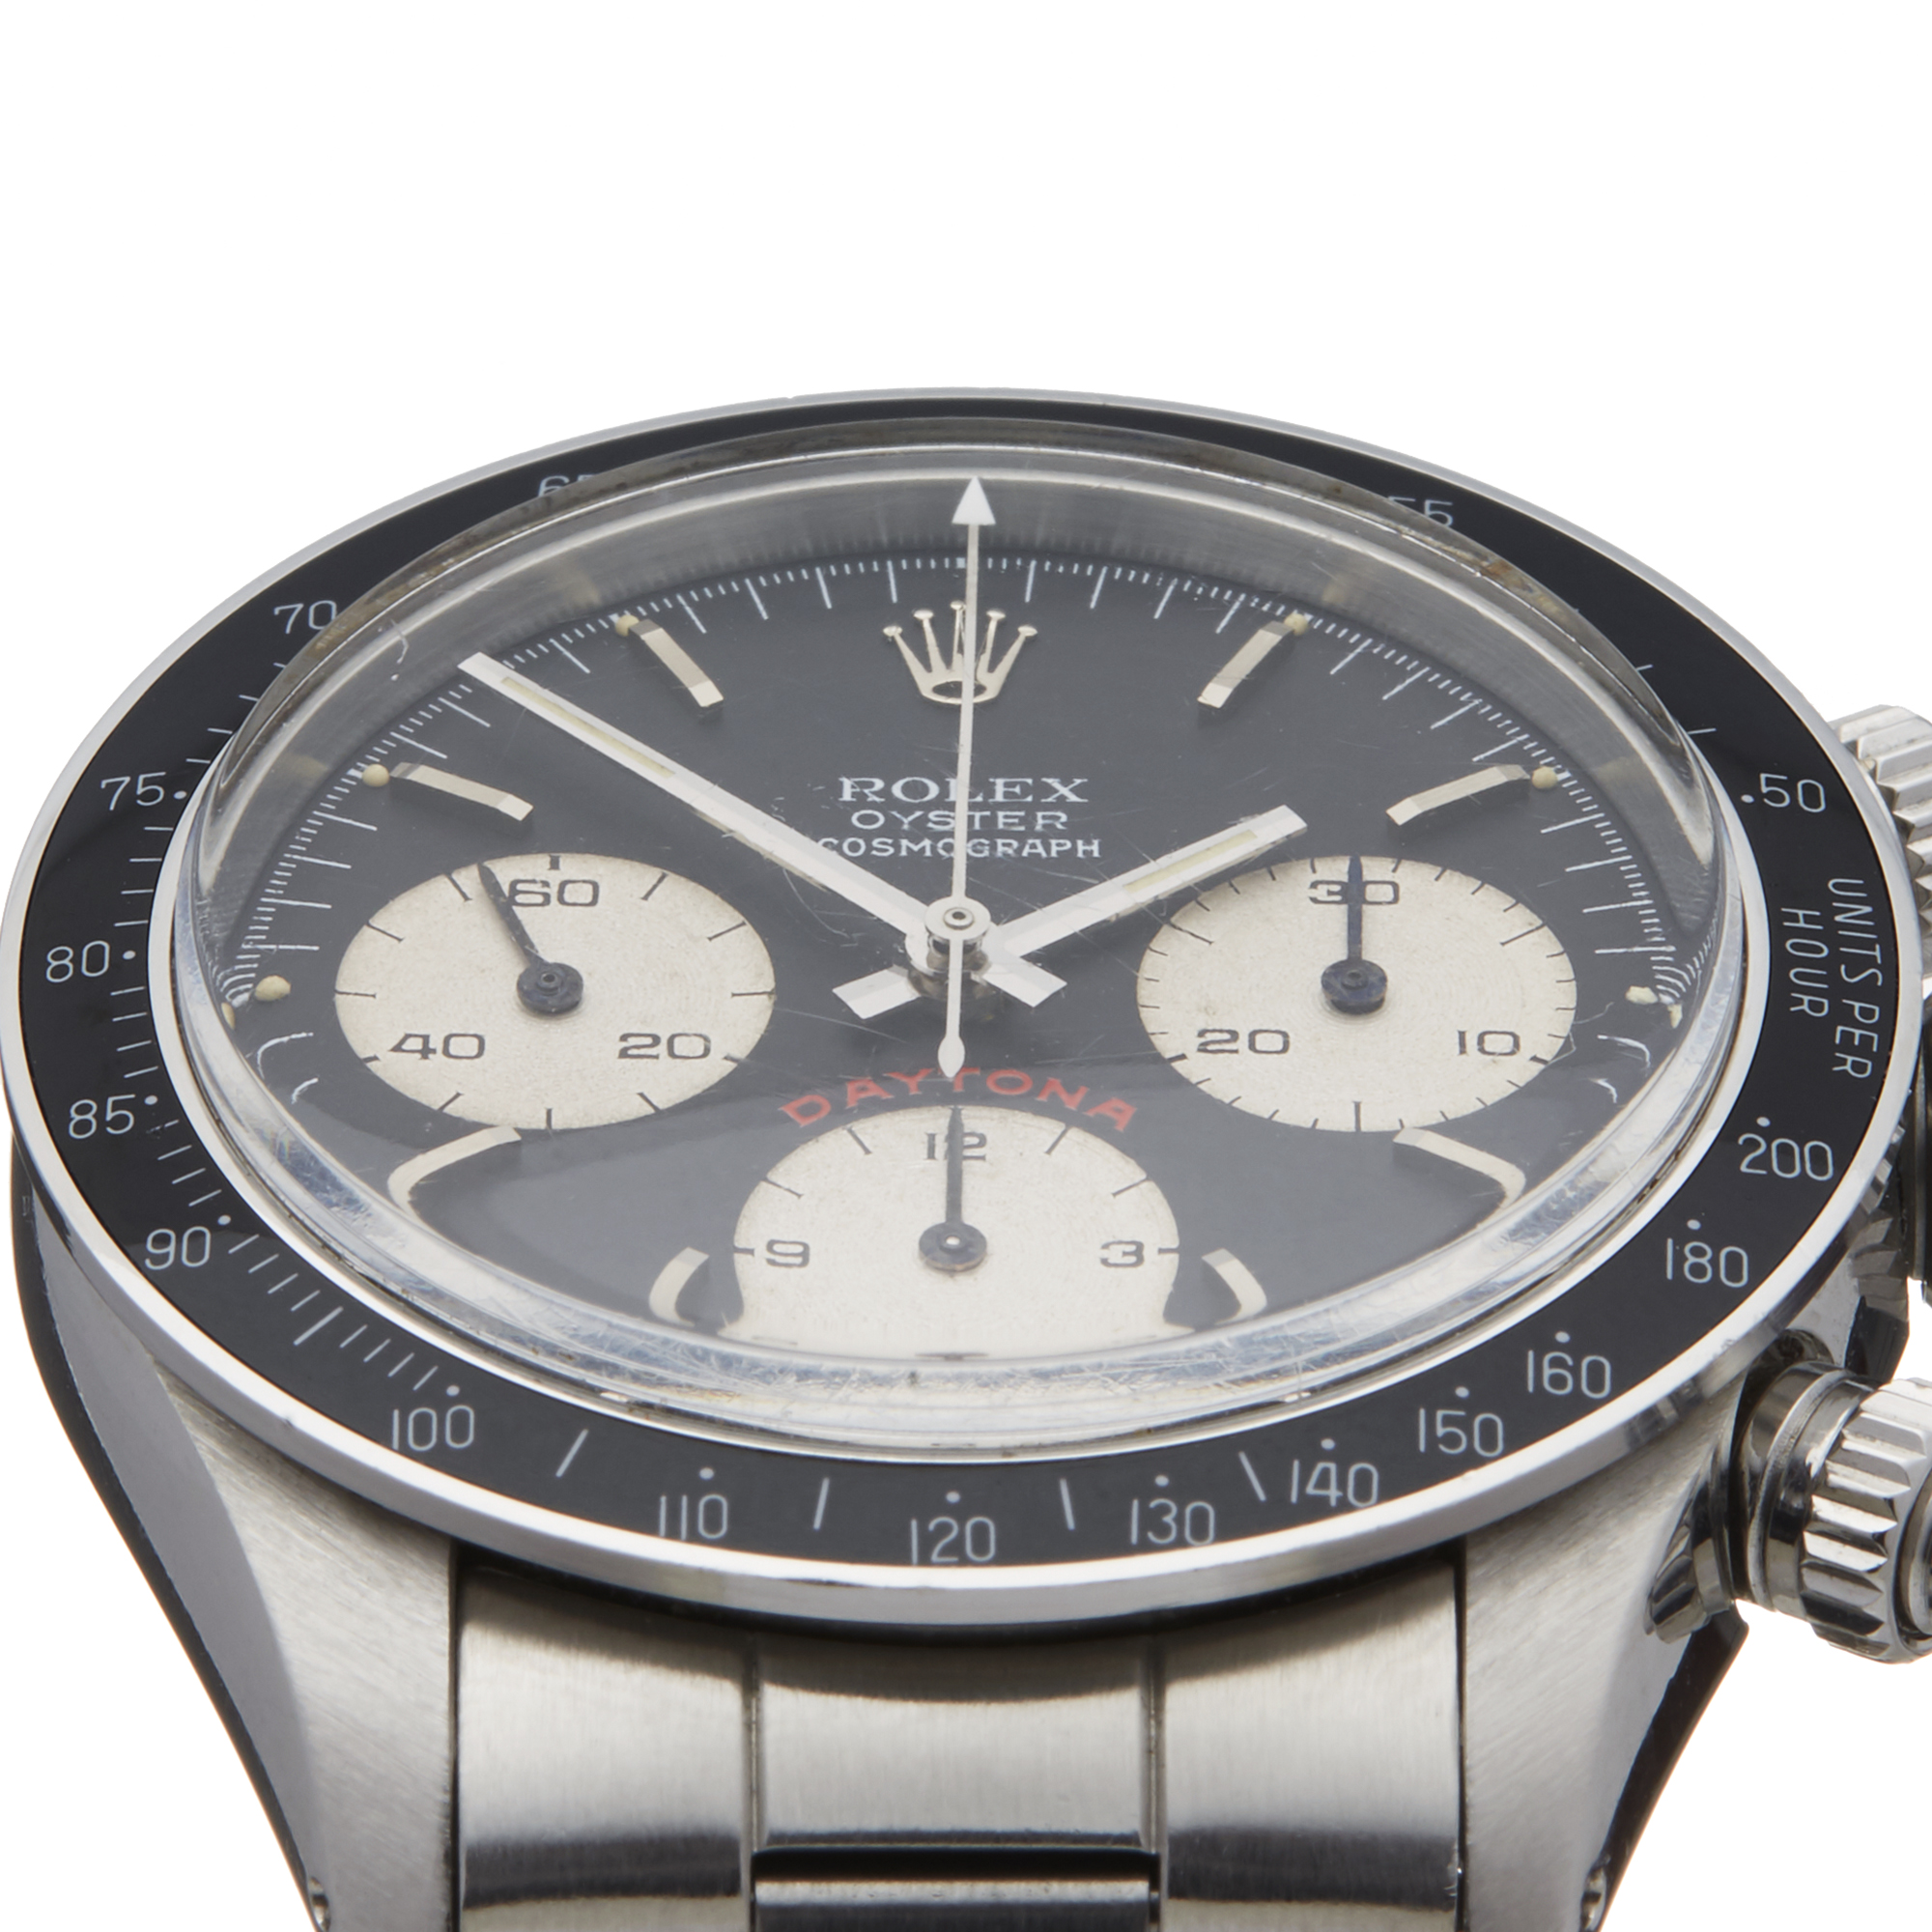 Lot 19 - Rolex Daytona Big Red Cosmograph Stainless Steel - 6263